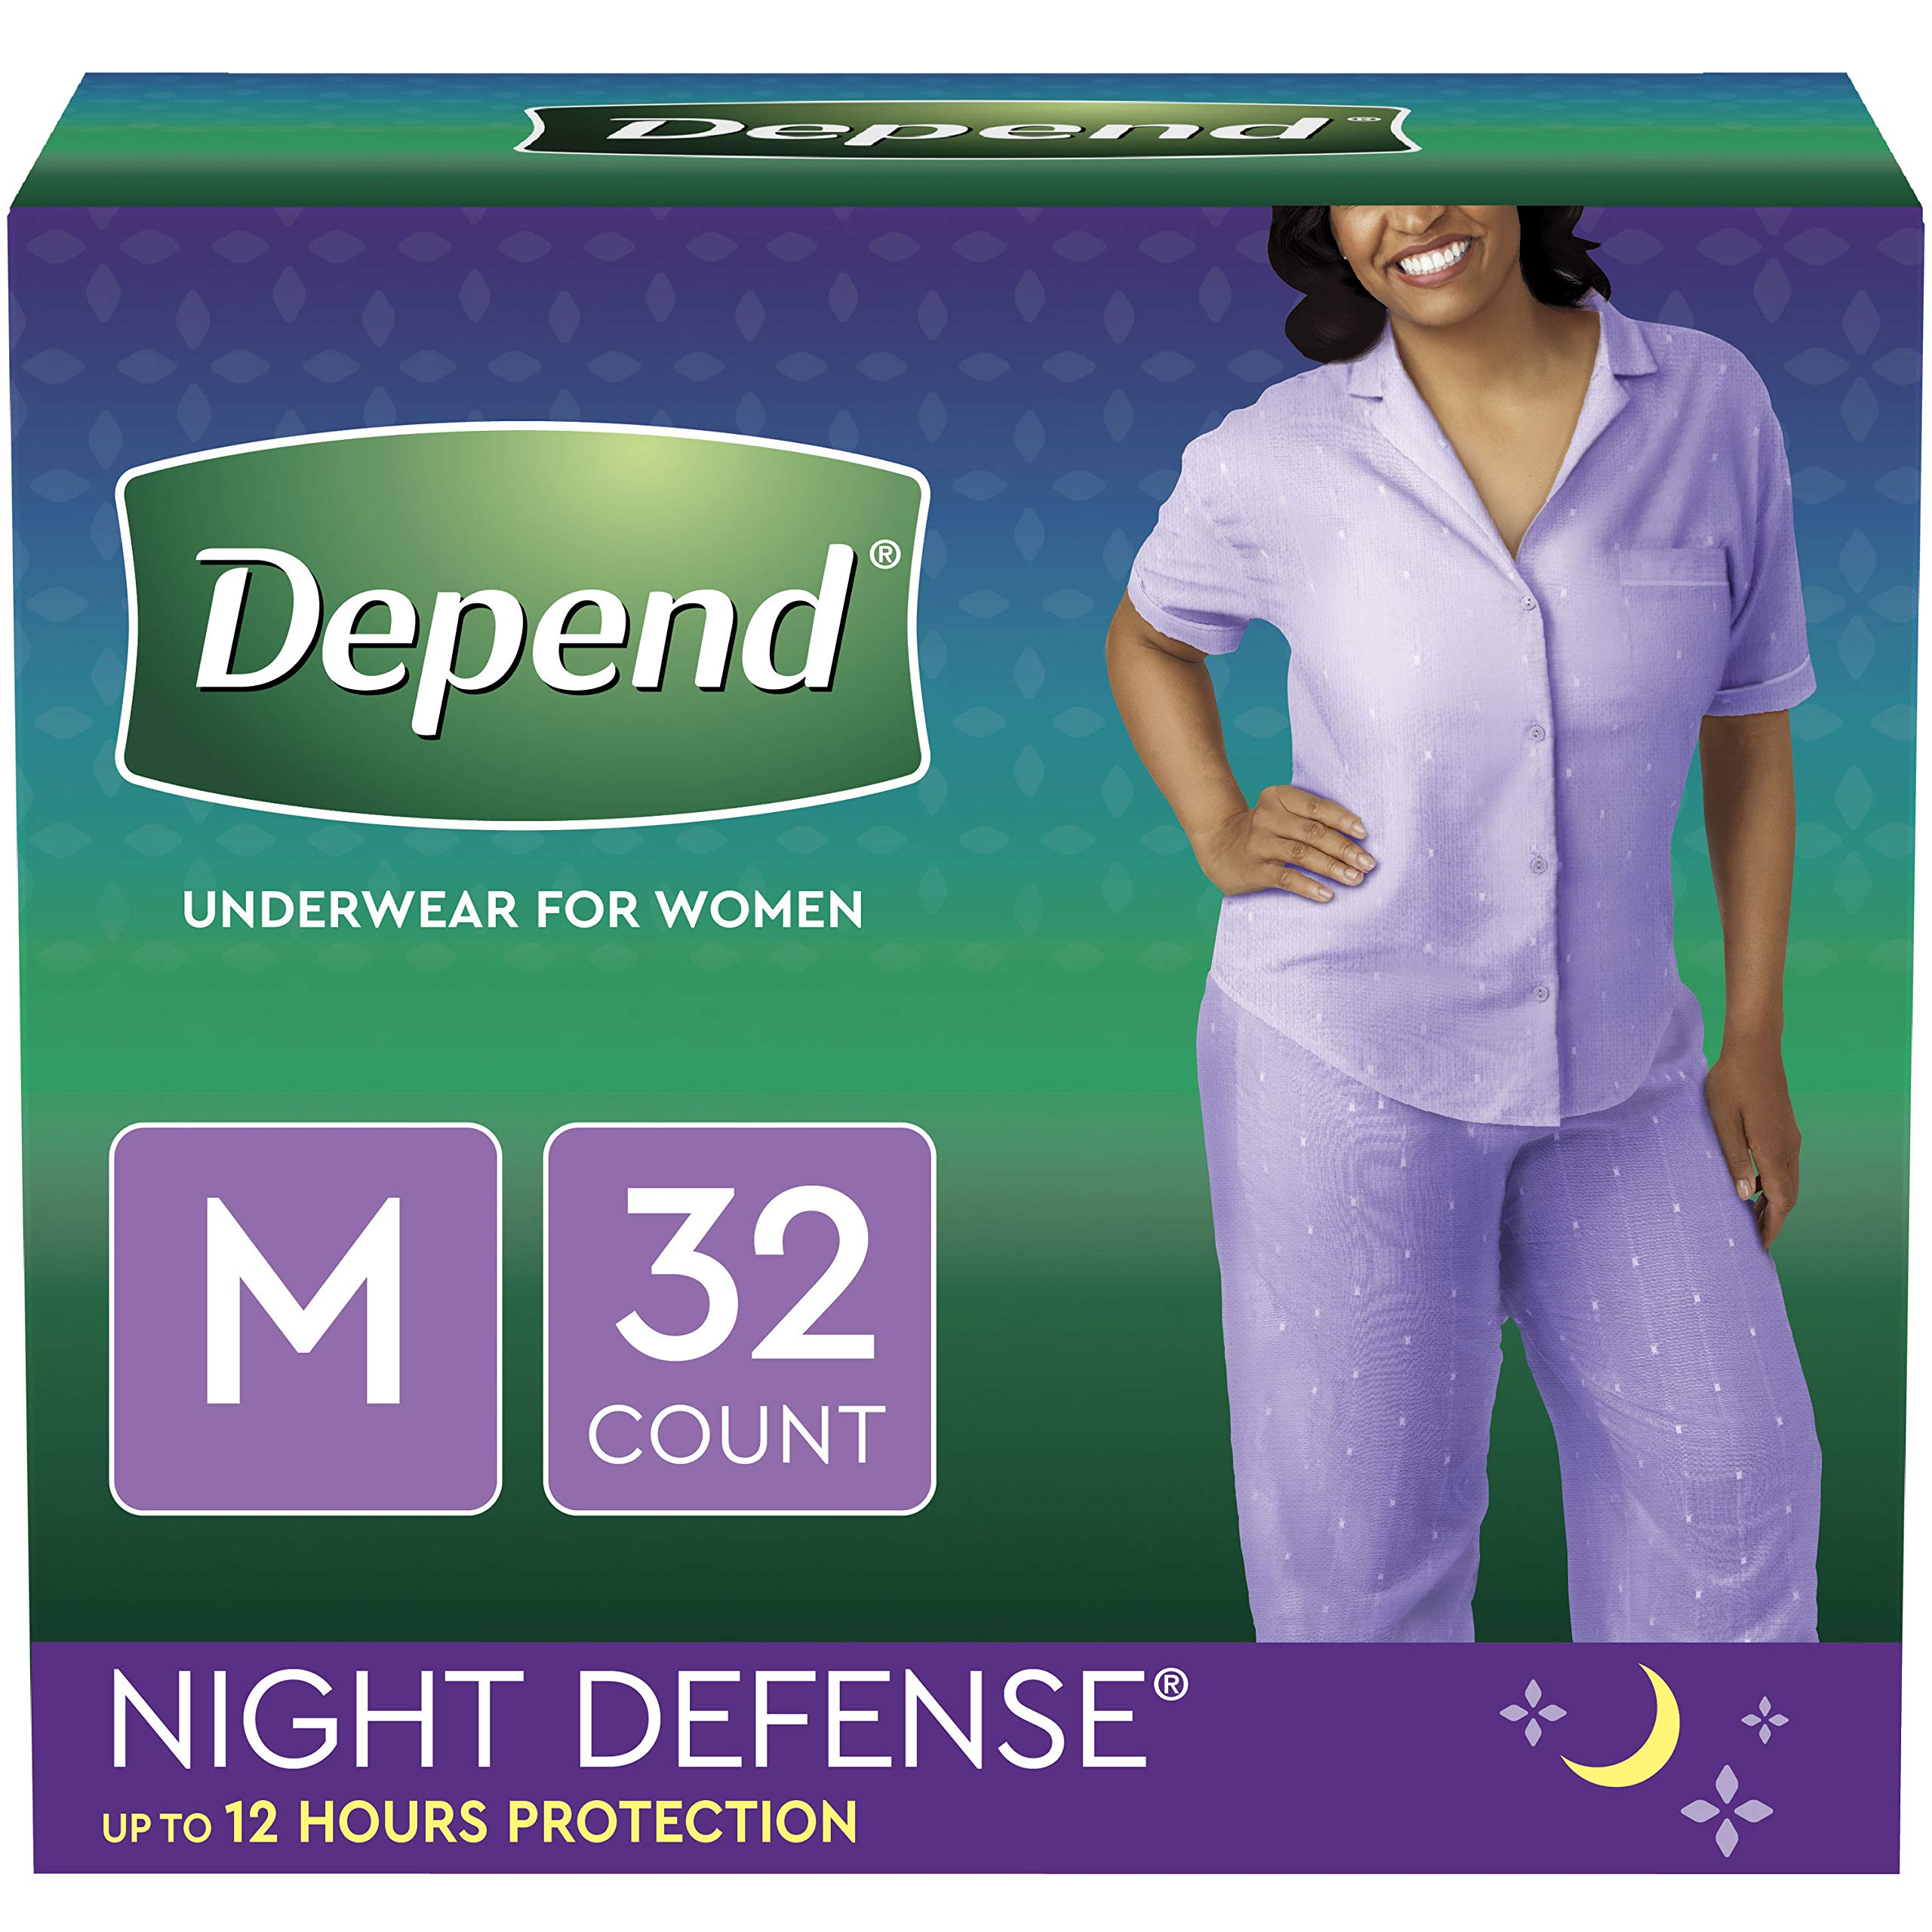 Depend Night Defense Incontinence Underwear for Women, Disposable, Overnight, M, Blush, 32 Count by Depend